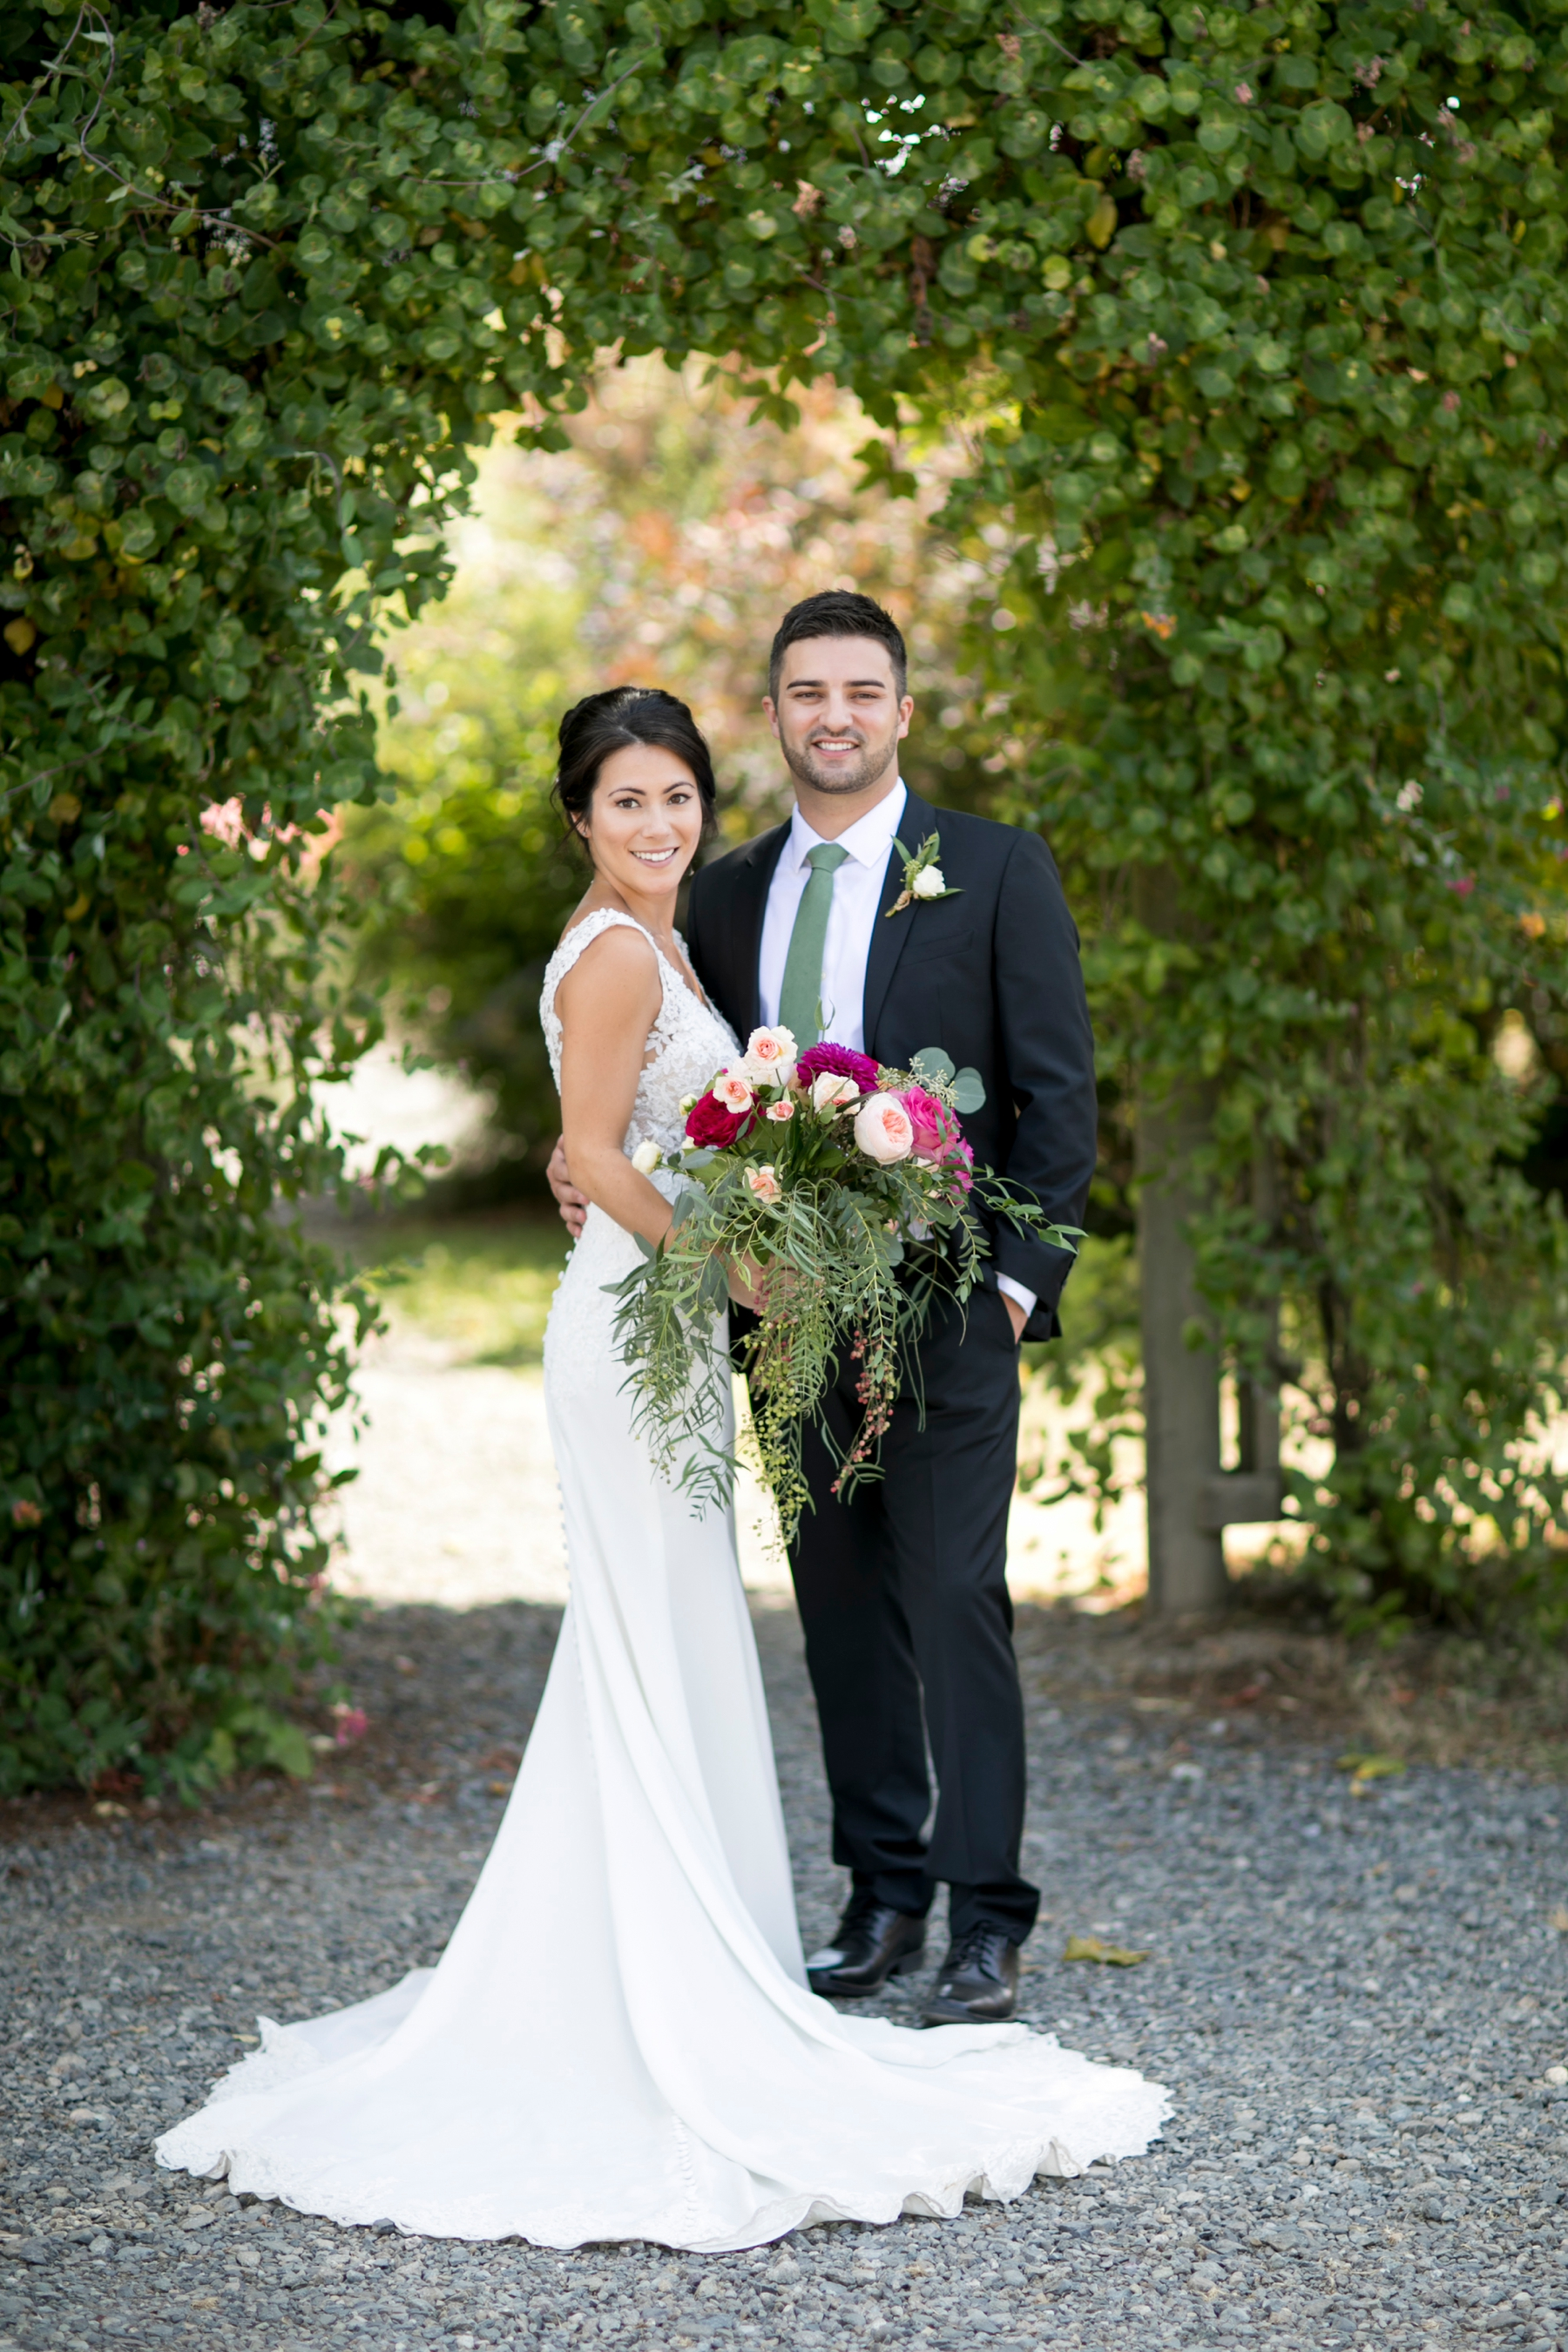 seatte, wedding, photographer, North Bend, Bybee Farms, Snoqualmie, issaqua,_0034.jpg